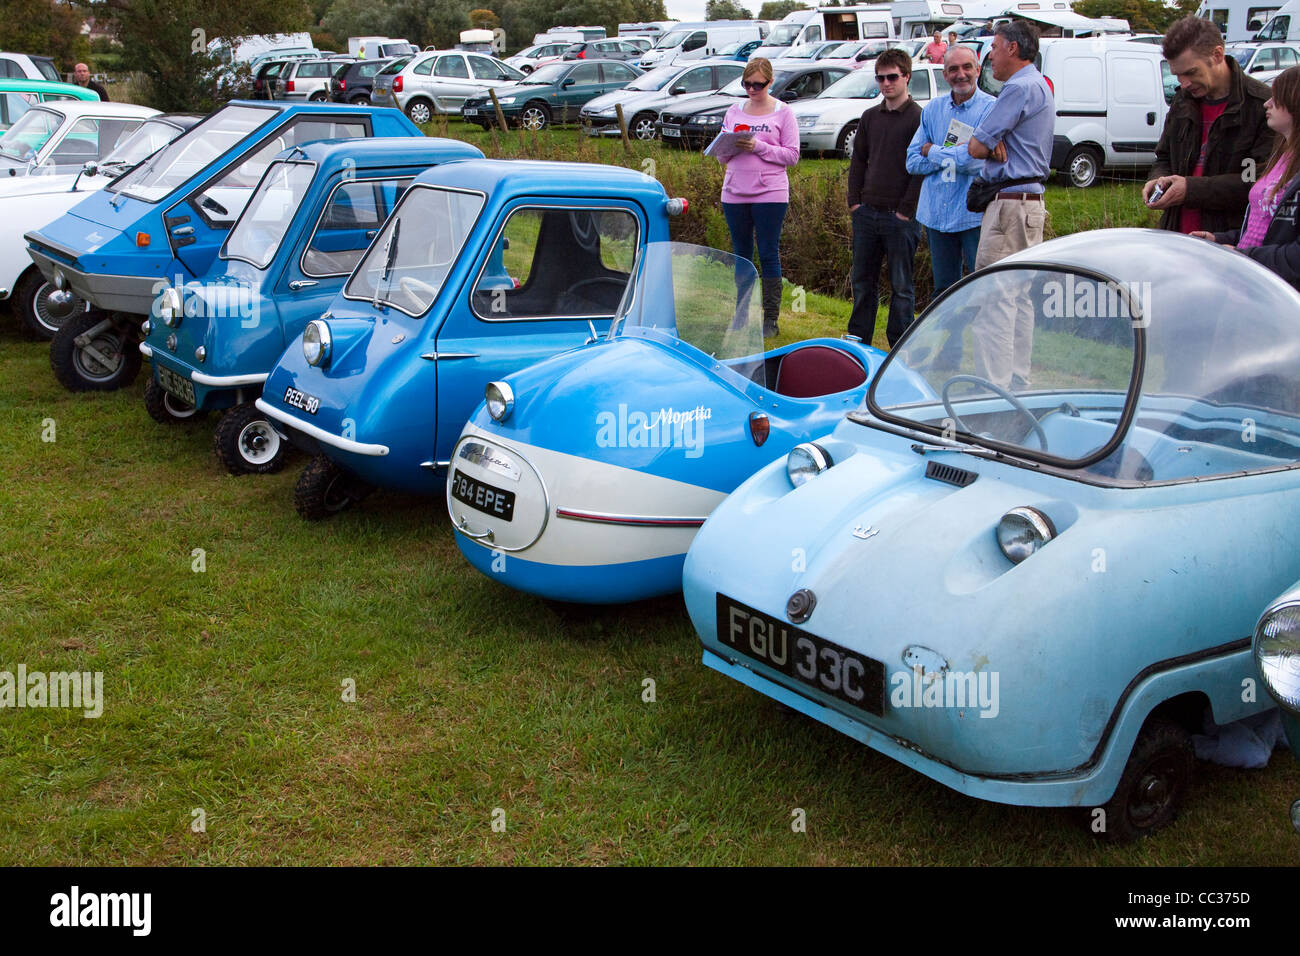 Vintage Micro cars and Bubble cars Stock Photo: 41868105 - Alamy